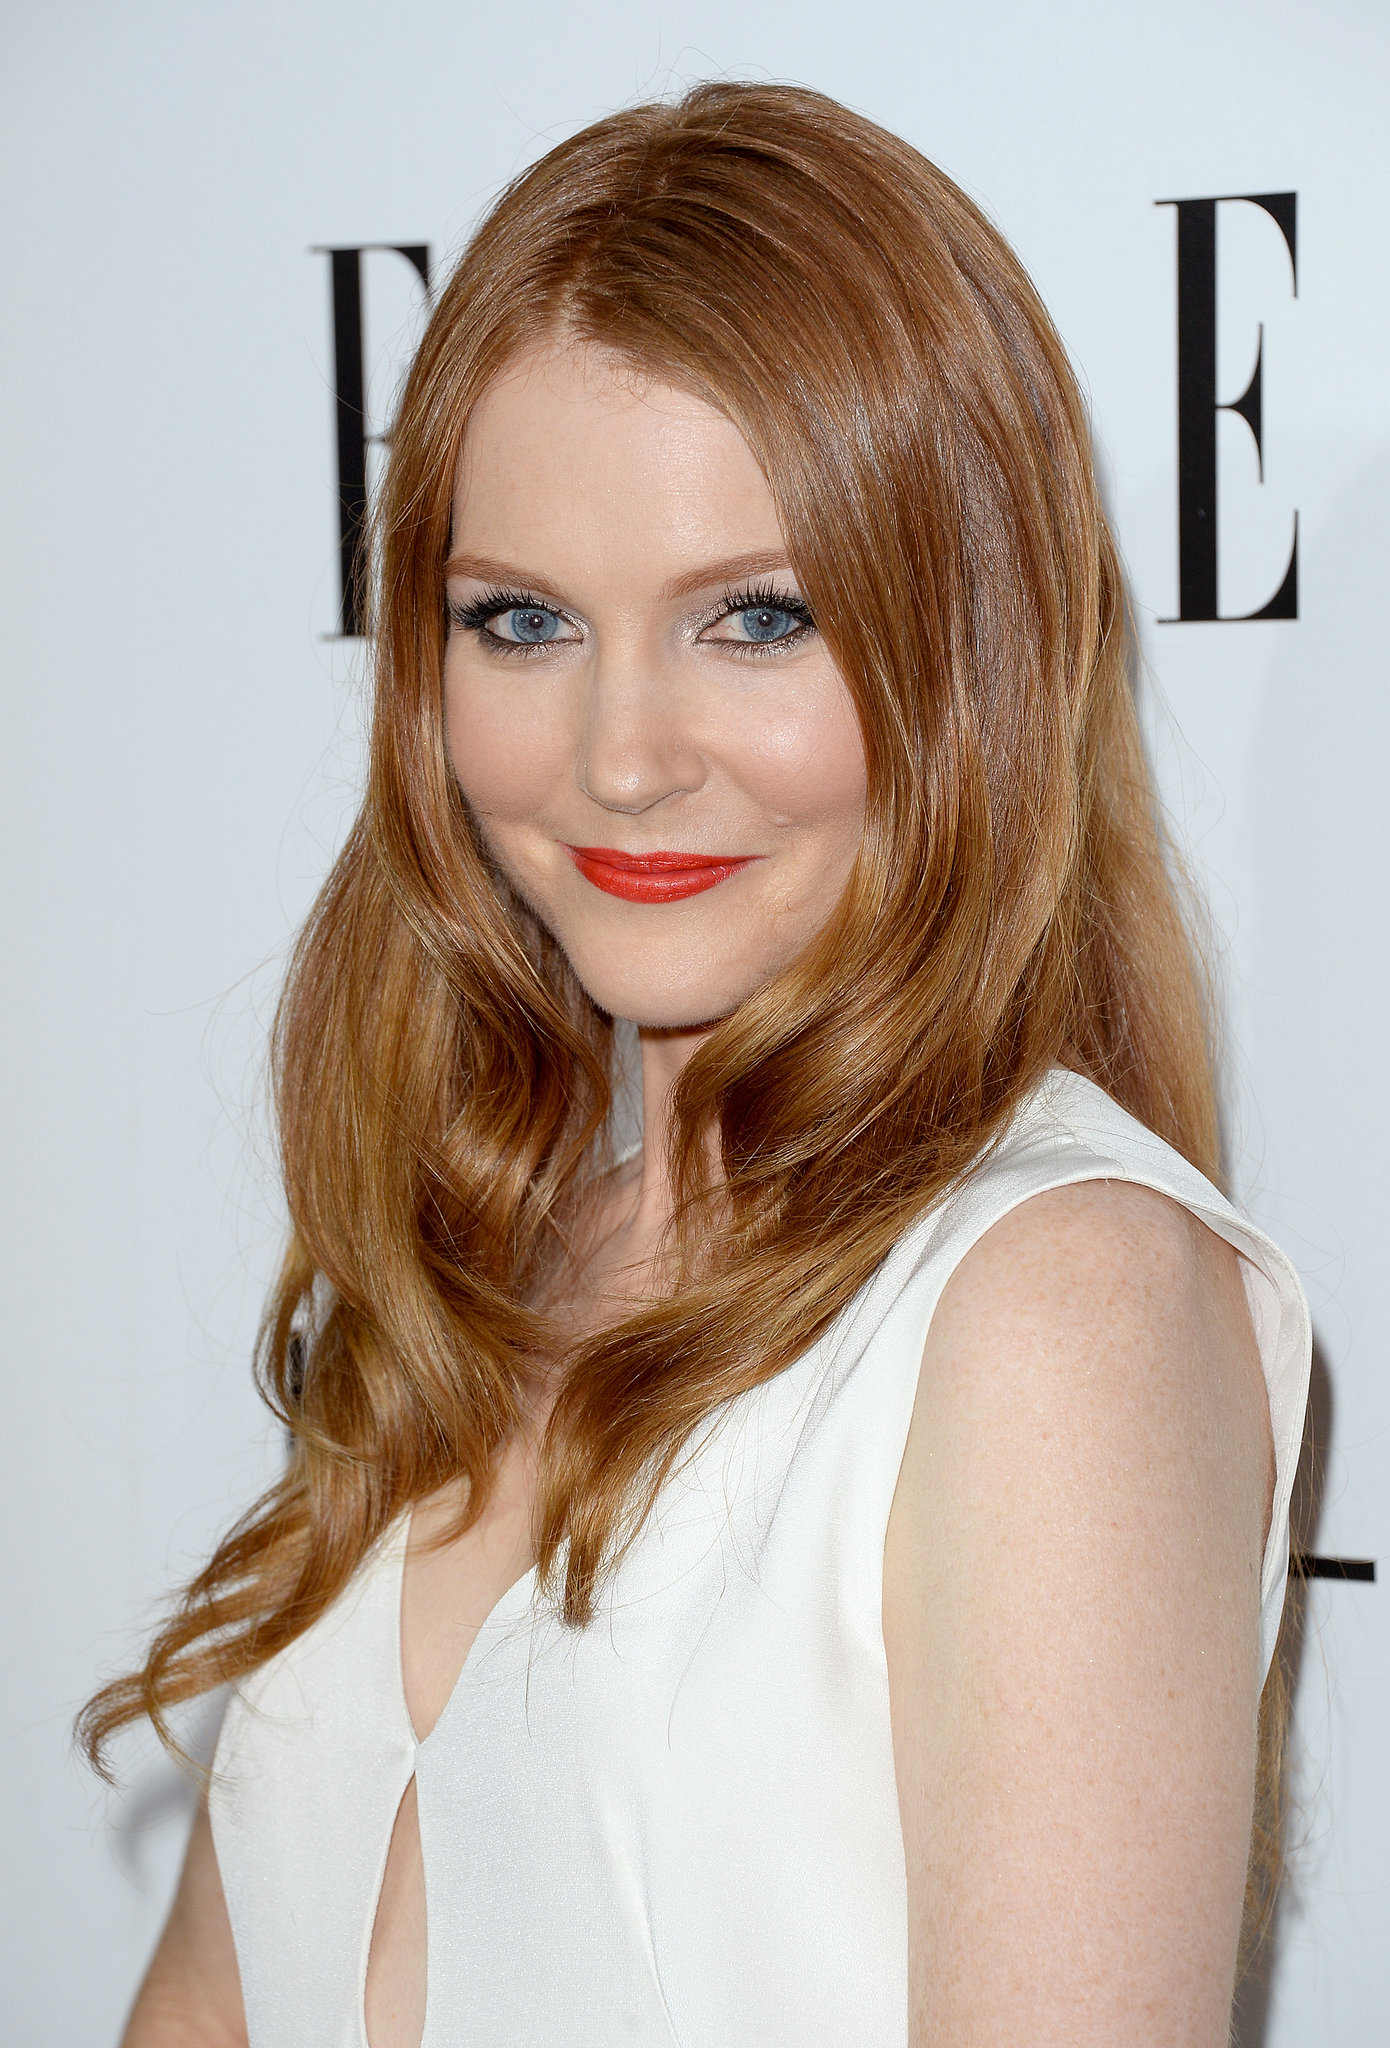 Darby Stanchfield Pics, Celebrity Collection